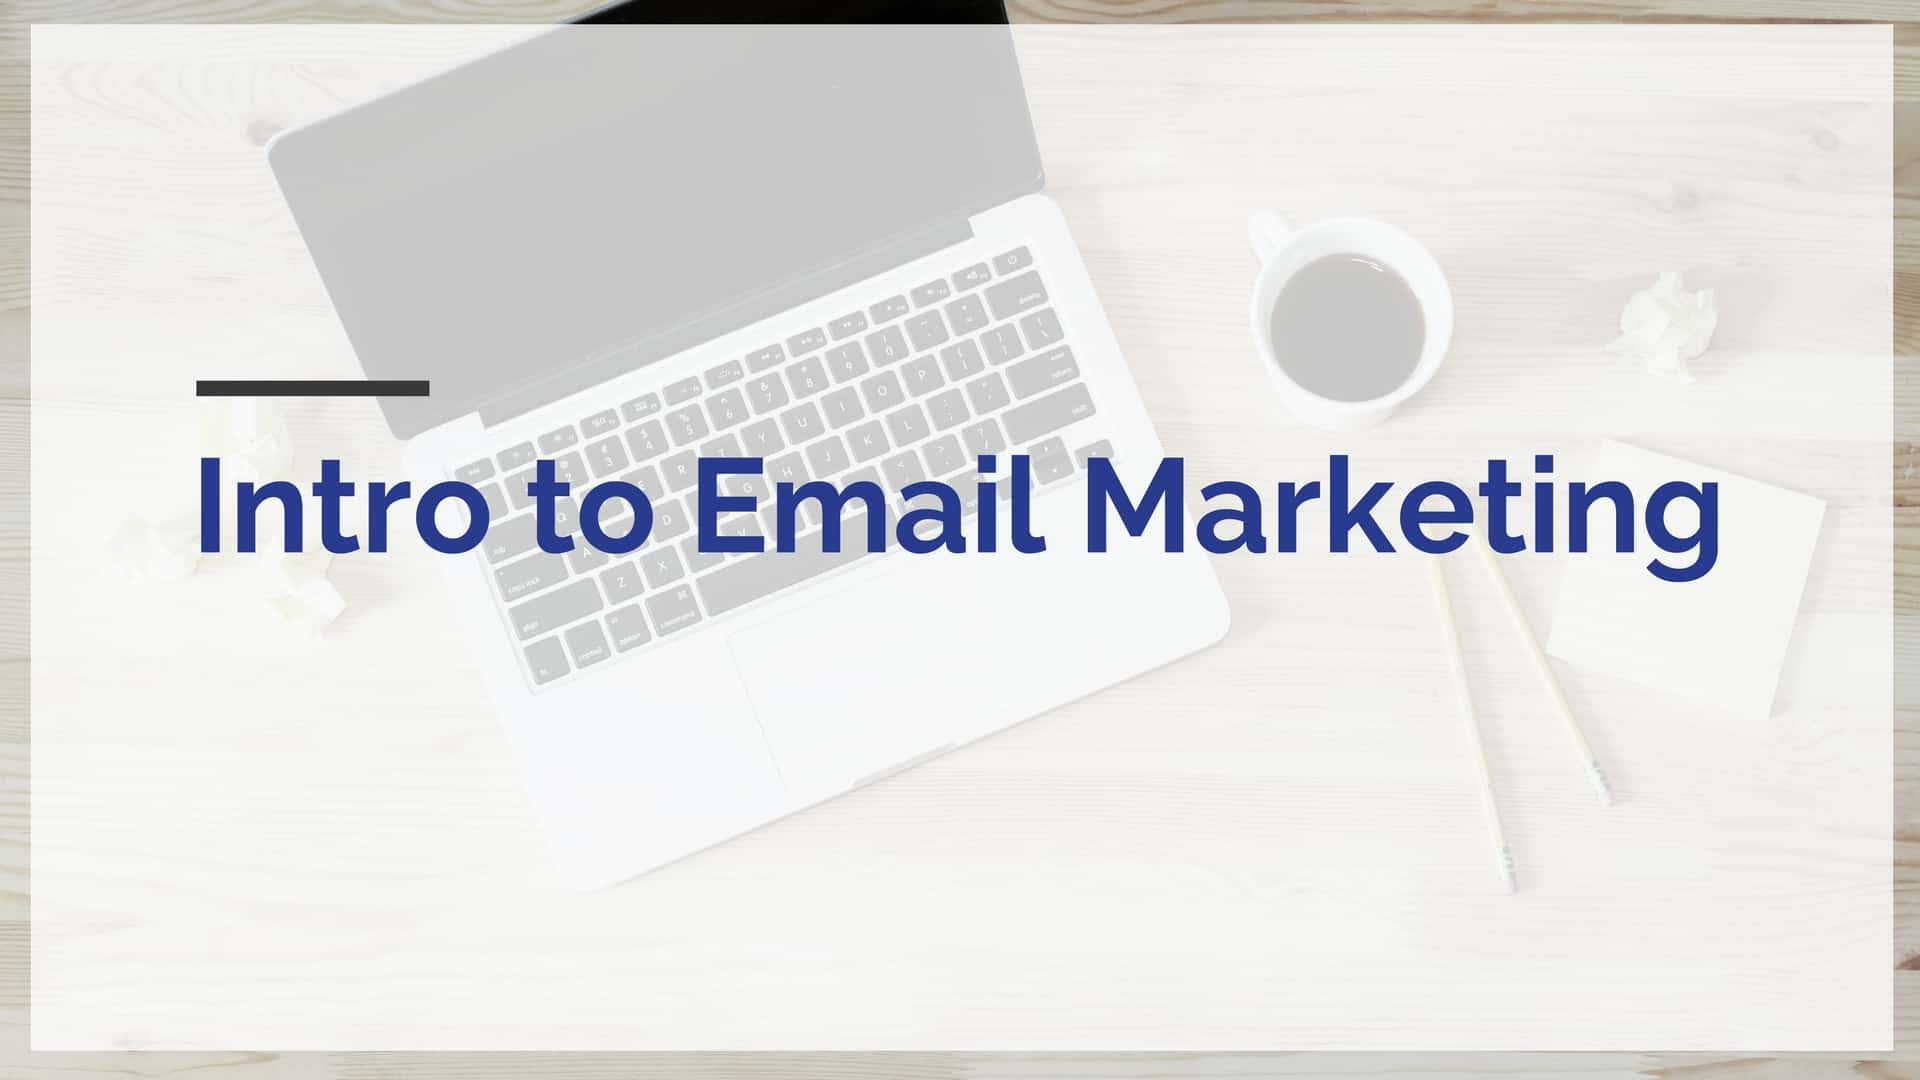 intro to email marketing course